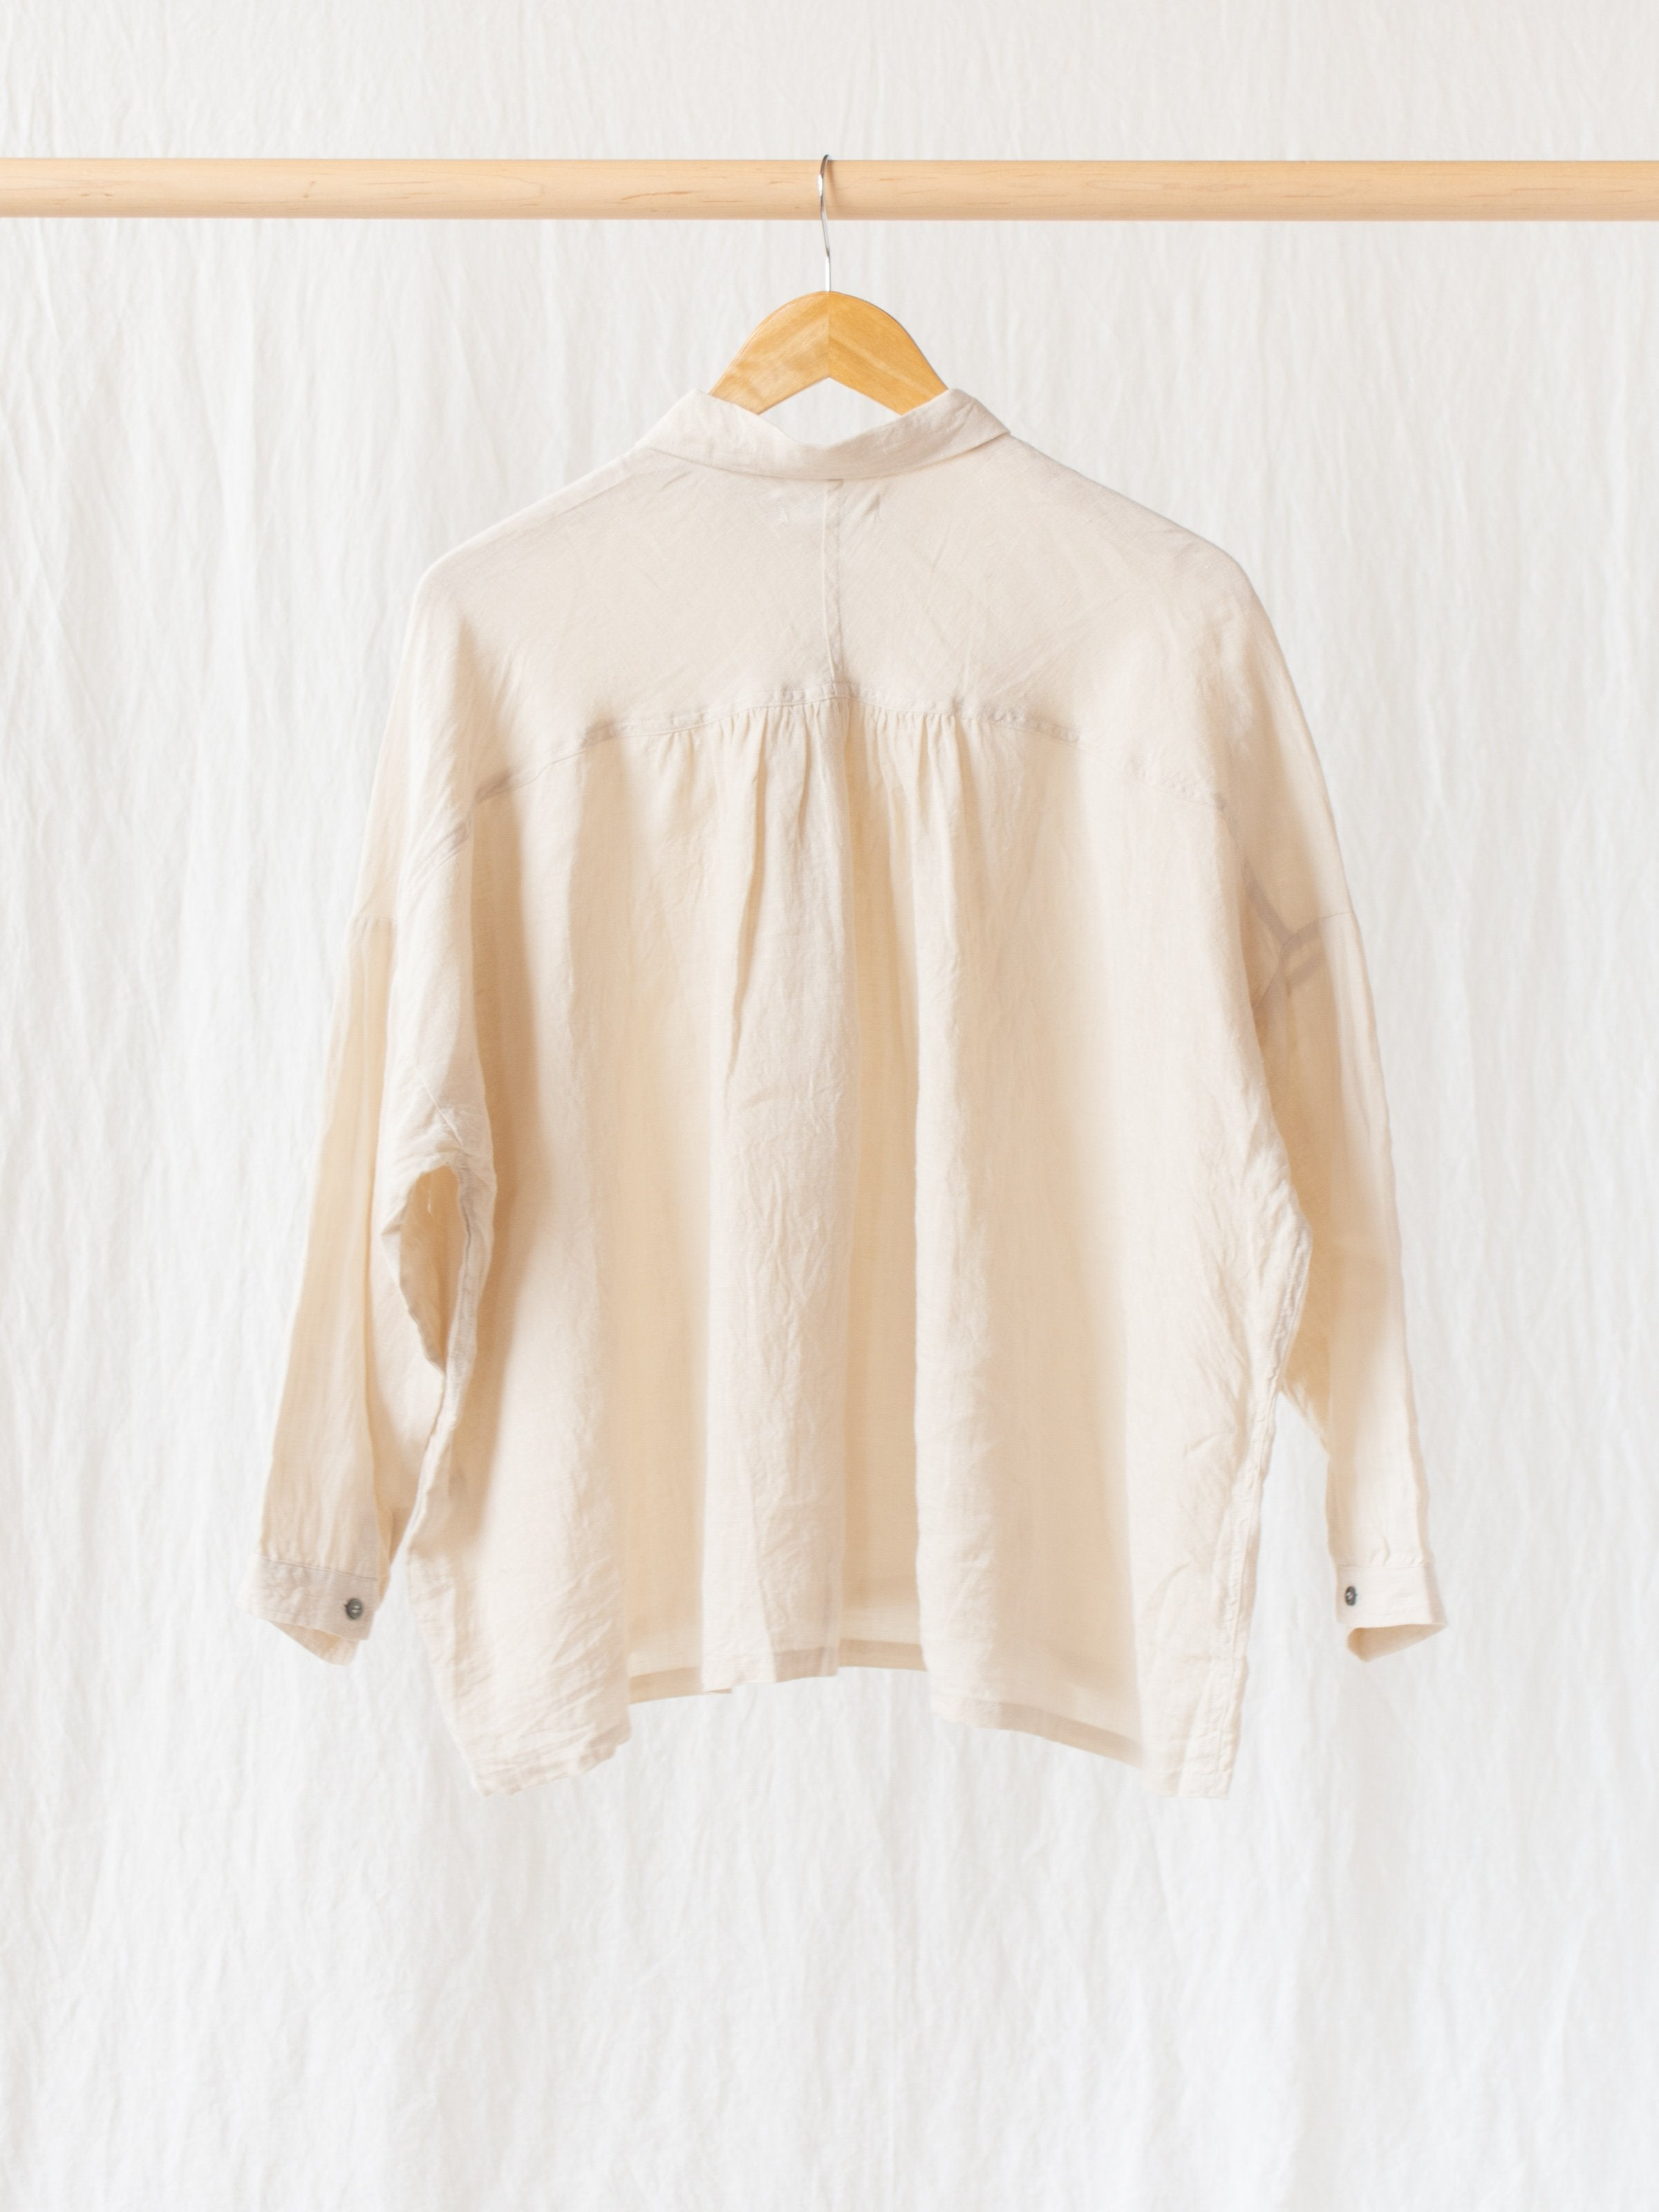 Namu Shop - Ichi Antiquites Linen Gather Shirt - Cream